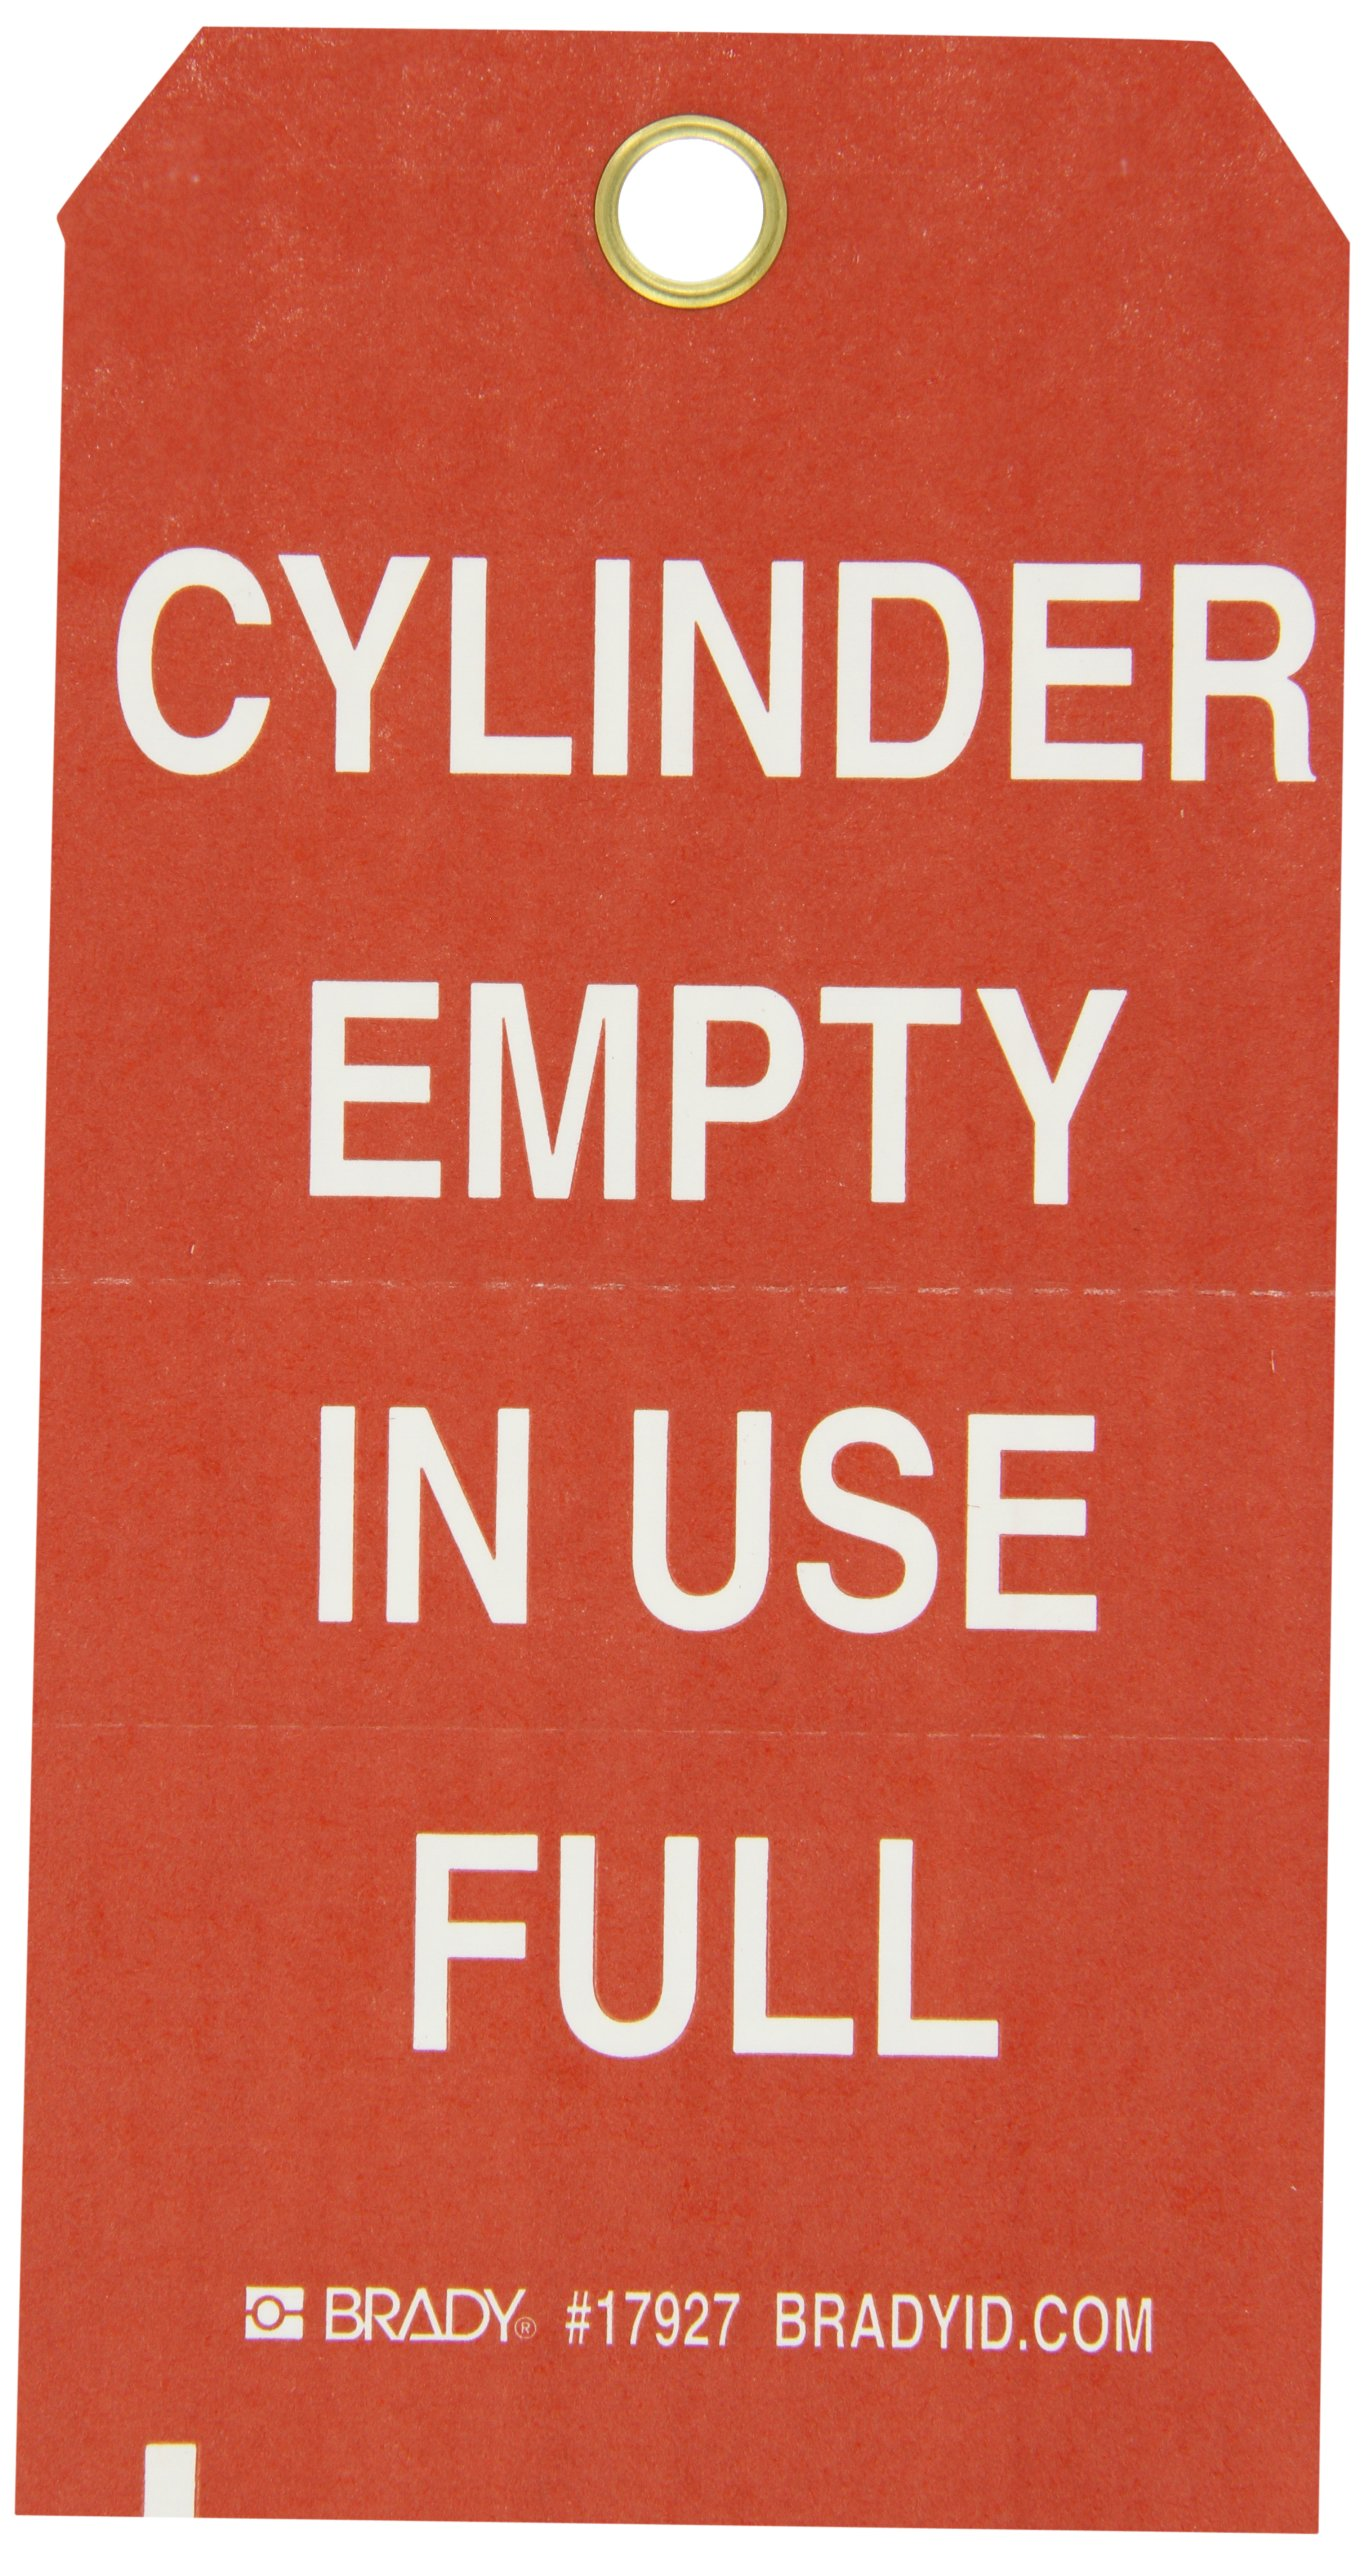 Brady 17927 5-3/4'' Height, 3'' Width, B-853 Cardstock, White On Red Color Cylinder Status Tag, Front And Back Legend ''Cylinder Empty In Use Full'' (Pack Of 100)